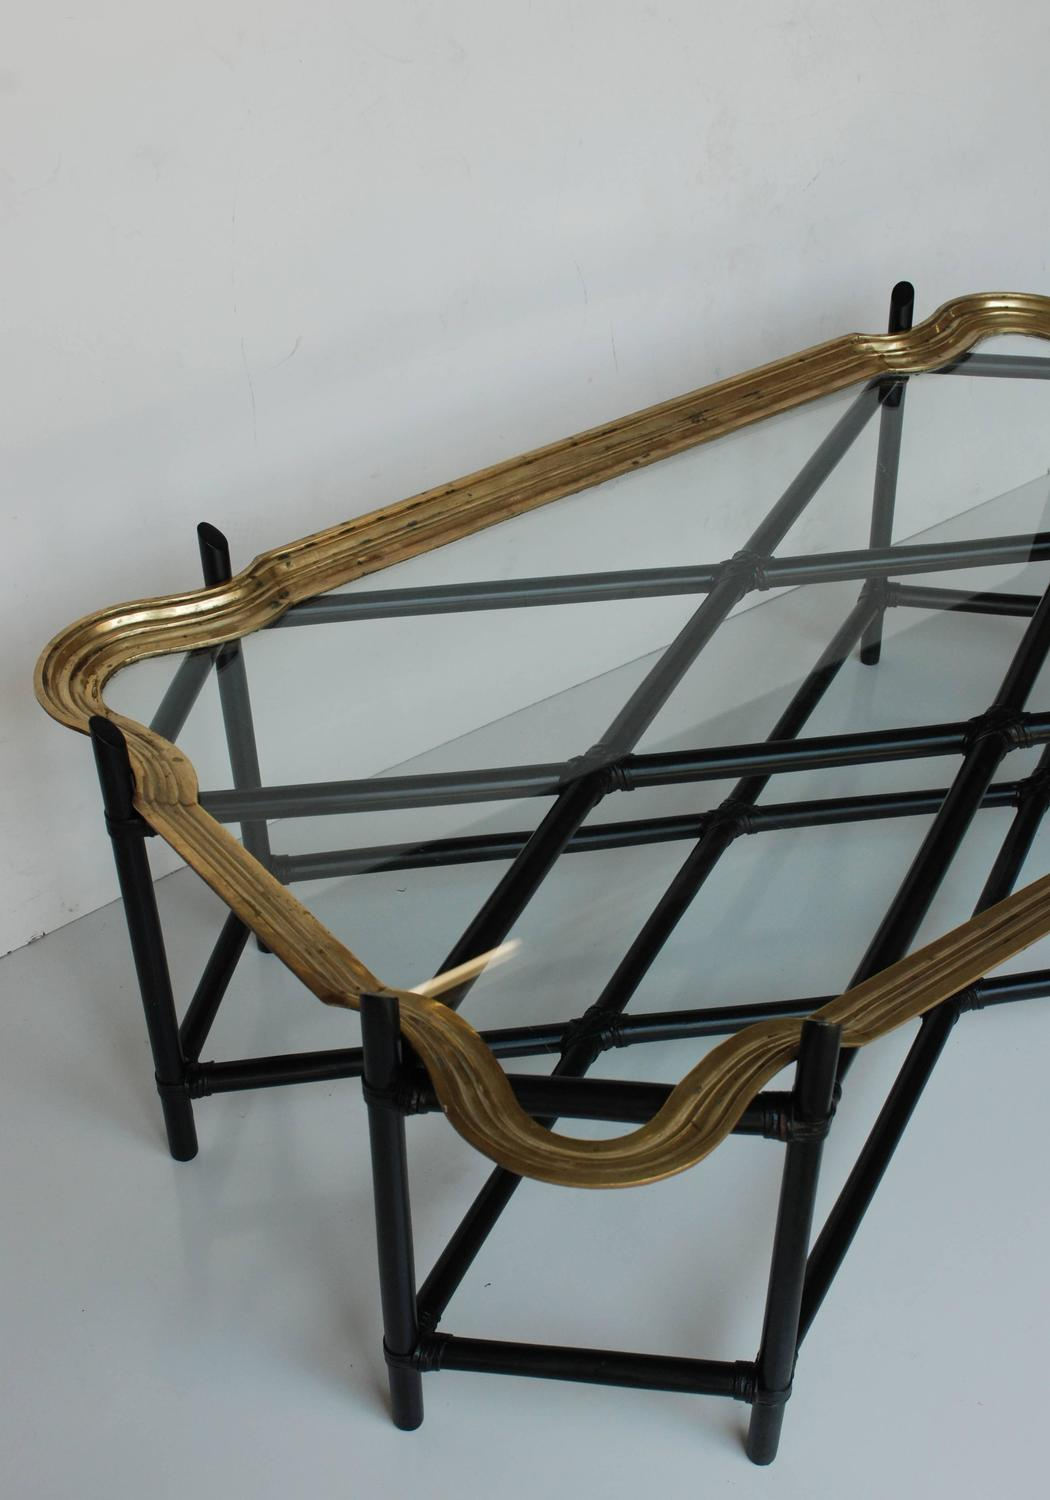 Faux Bamboo And Glass And Brass Tray Coffee Table For Sale At 1stdibs